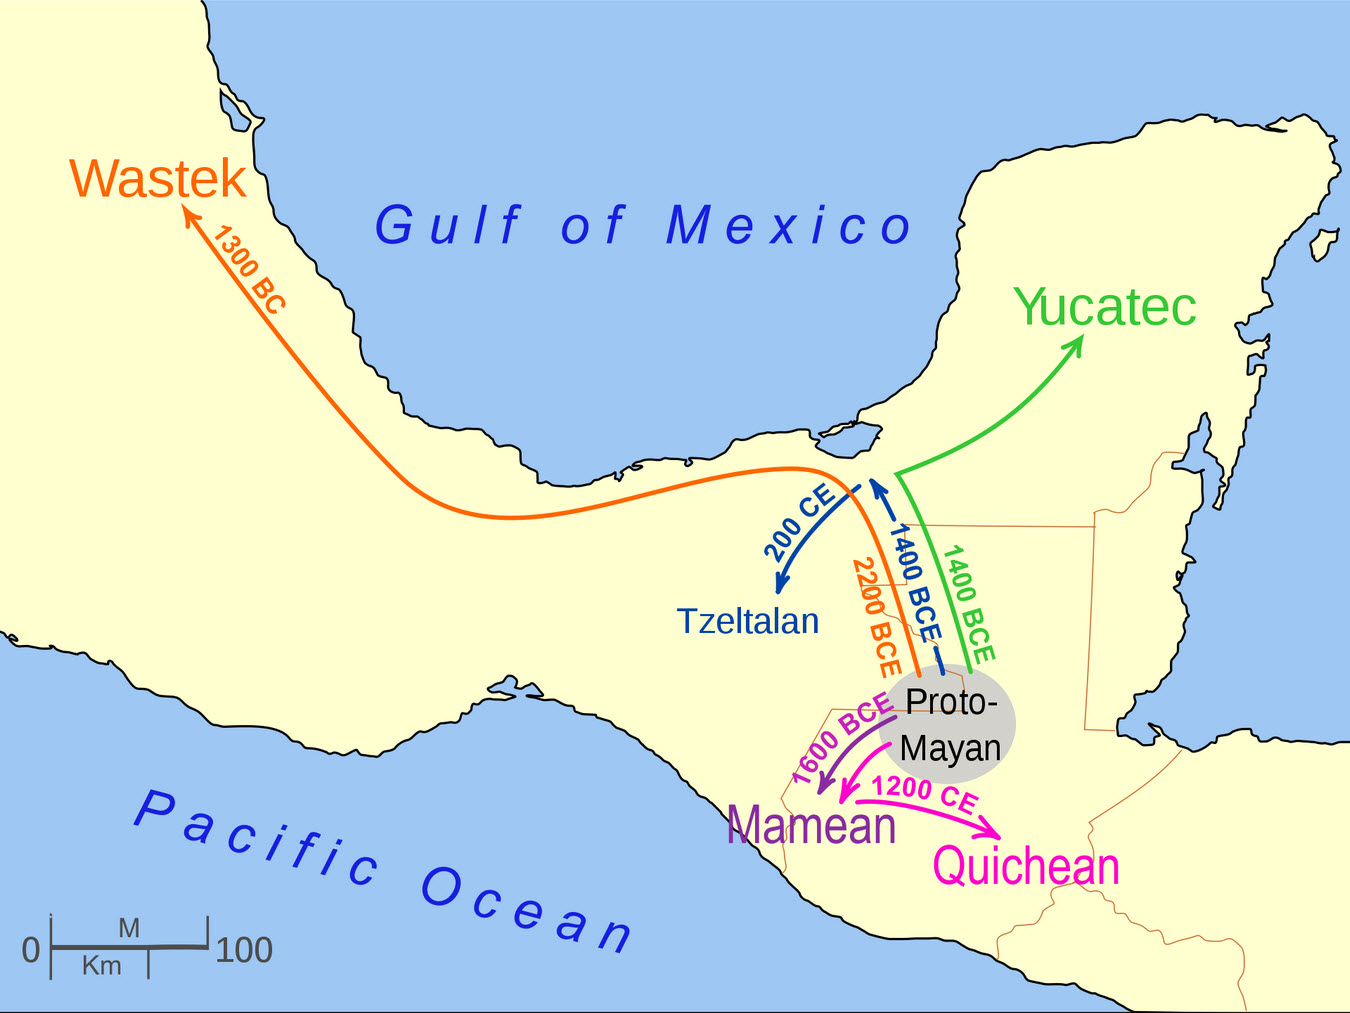 mayan language migrations out from the linguistic core